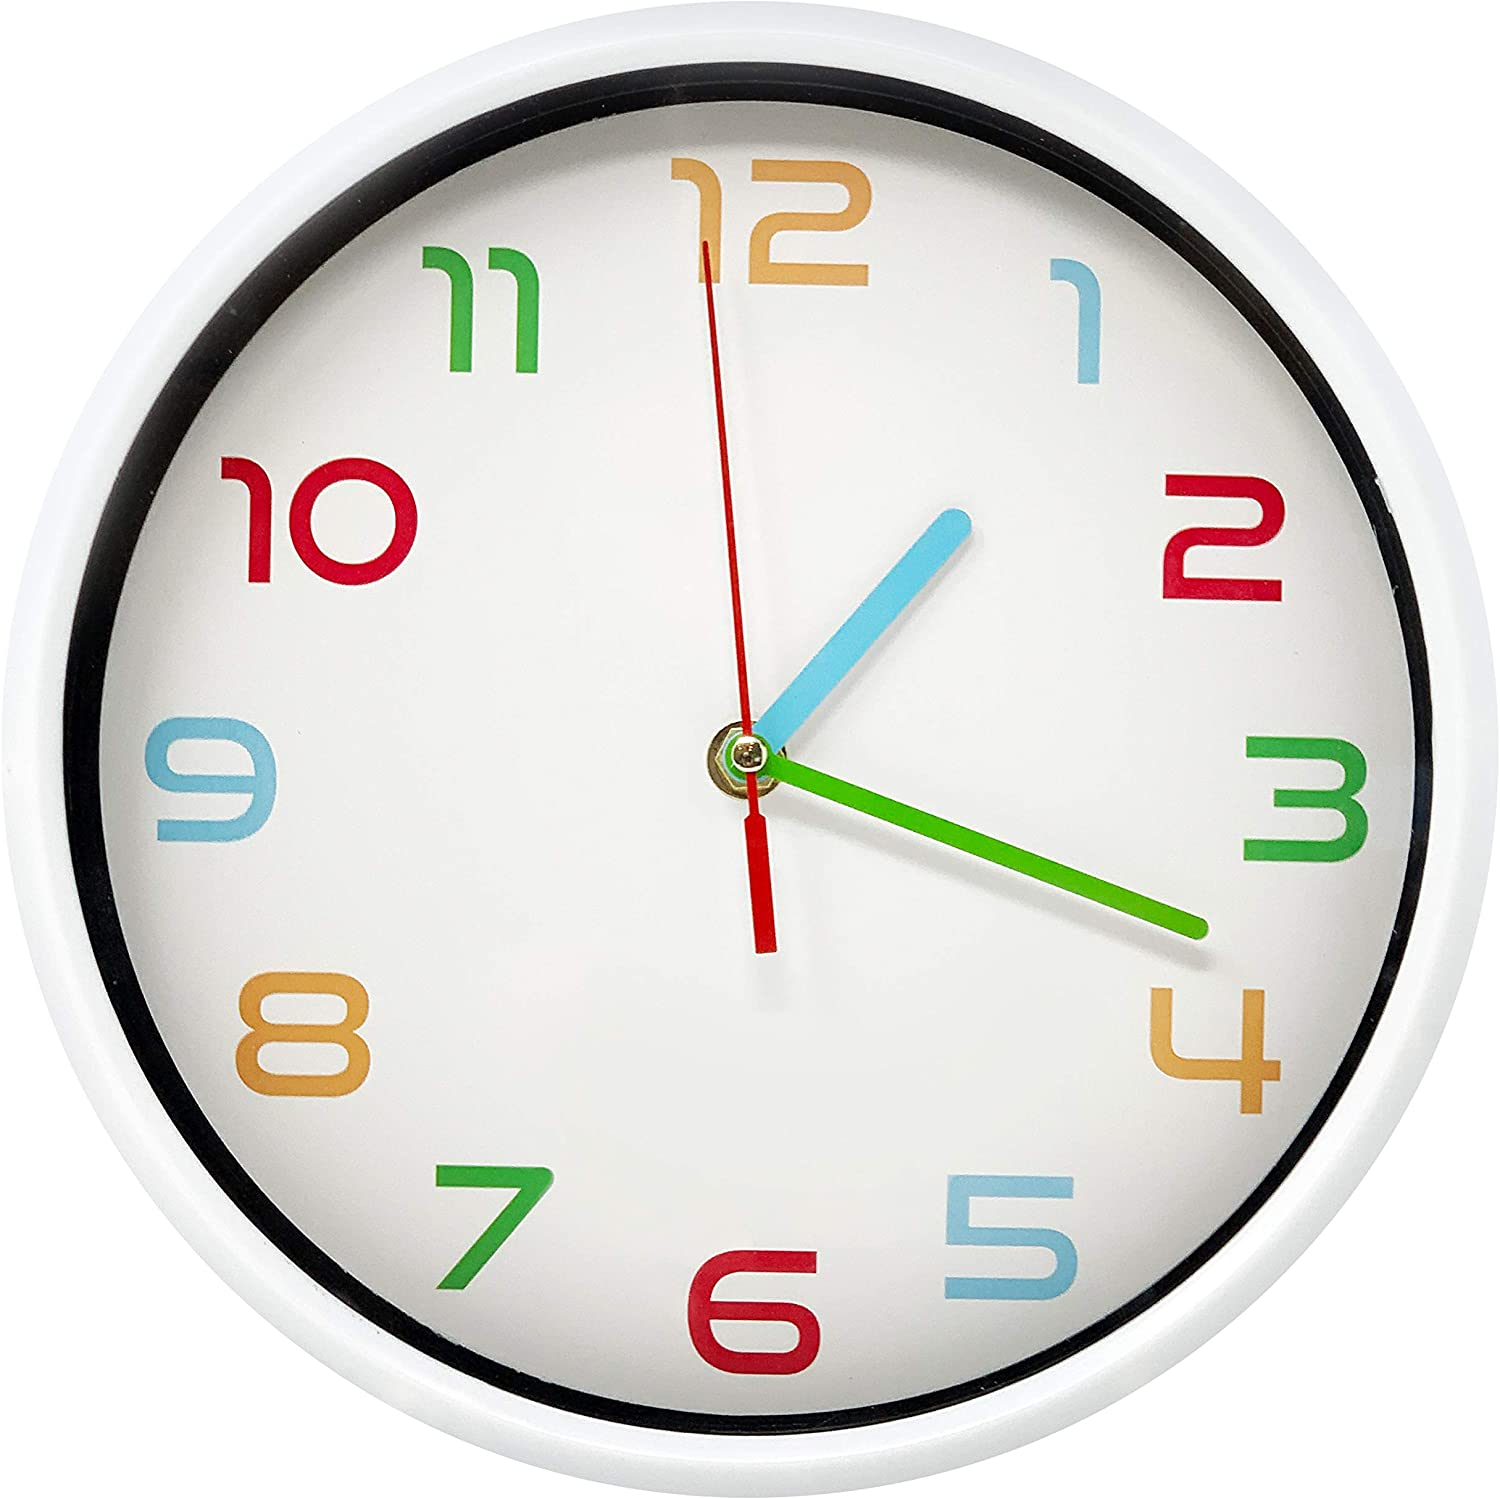 Non Ticking Modern Wall Clock with Silent Sweeping Movement, Battery Operated and Included, Kids Room, Bedroom, Living Room Décor, Minimalist Decorative Design, Color Numbers